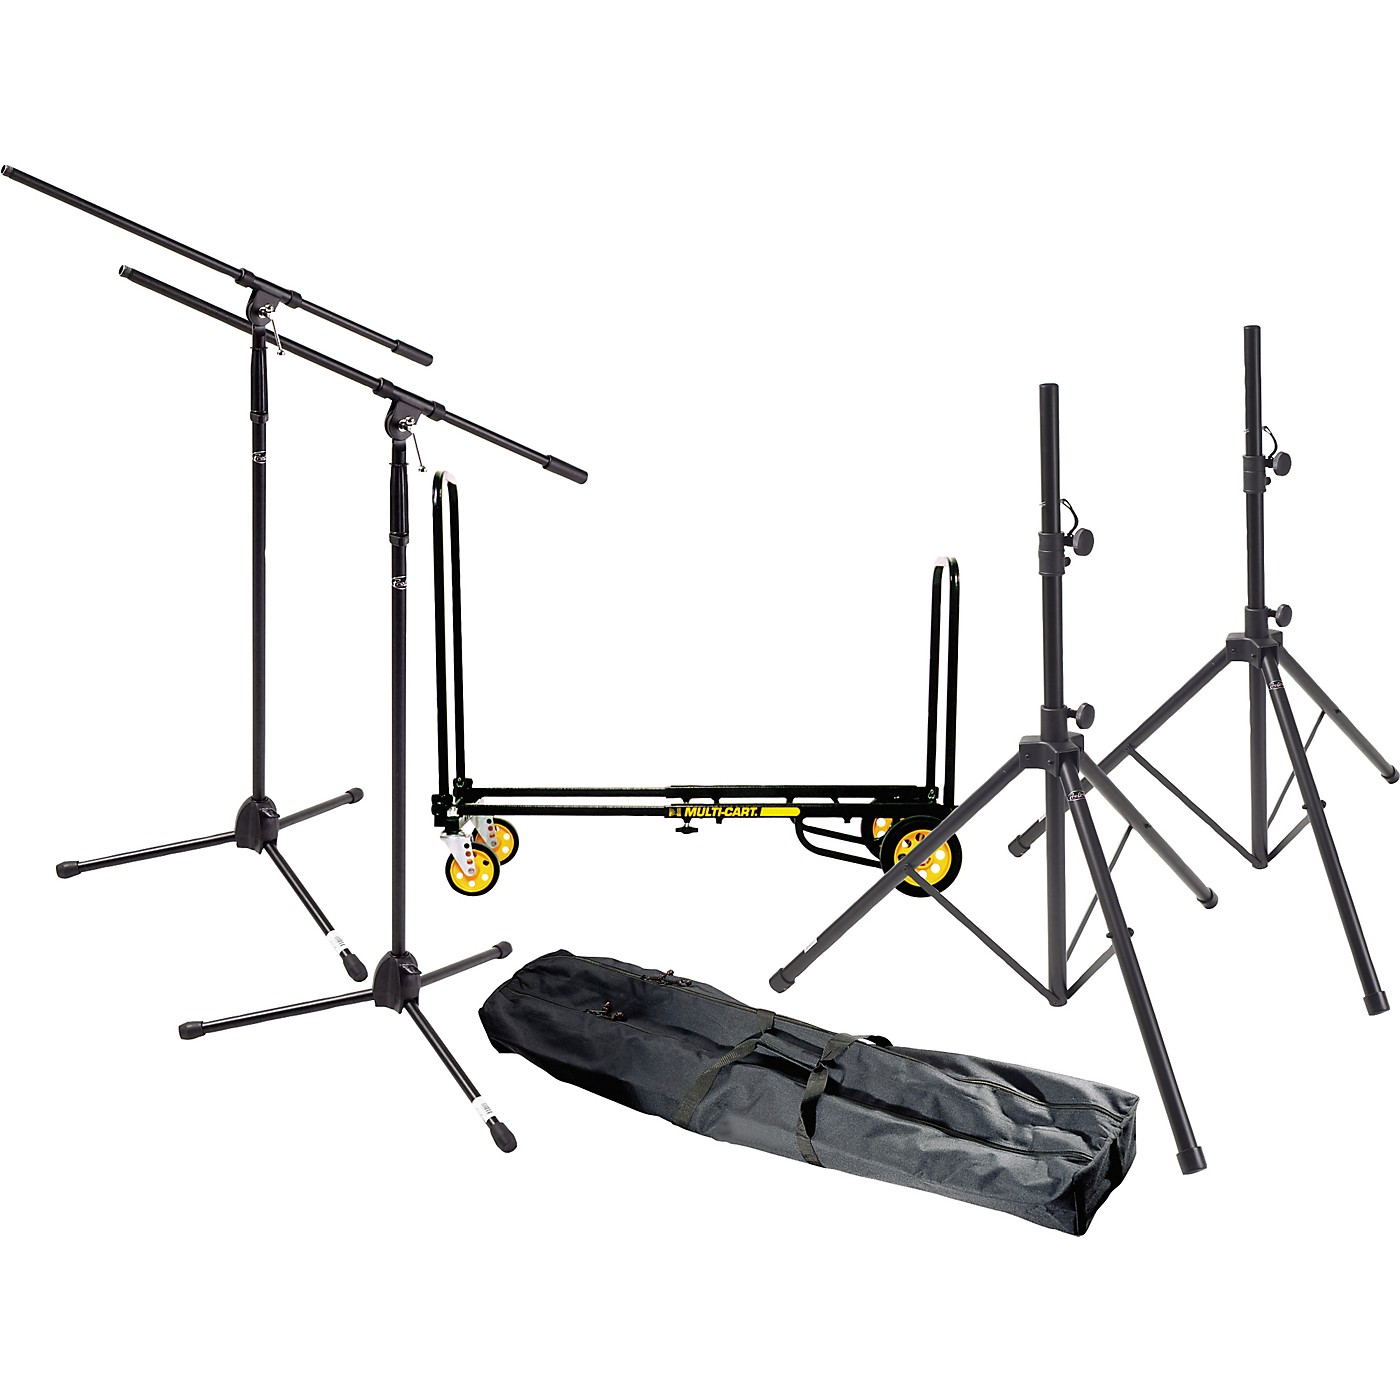 Gear One Gigging Pro Live Sound Accessories Pack thumbnail